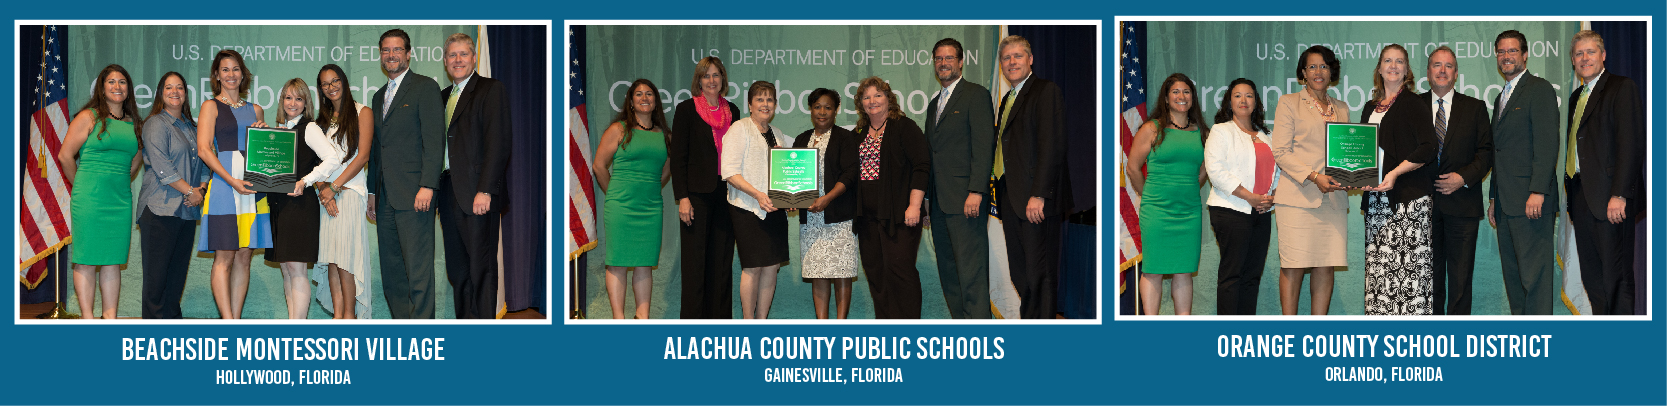 2016 - Fifth Annual Green Ribbon Schools Recognition